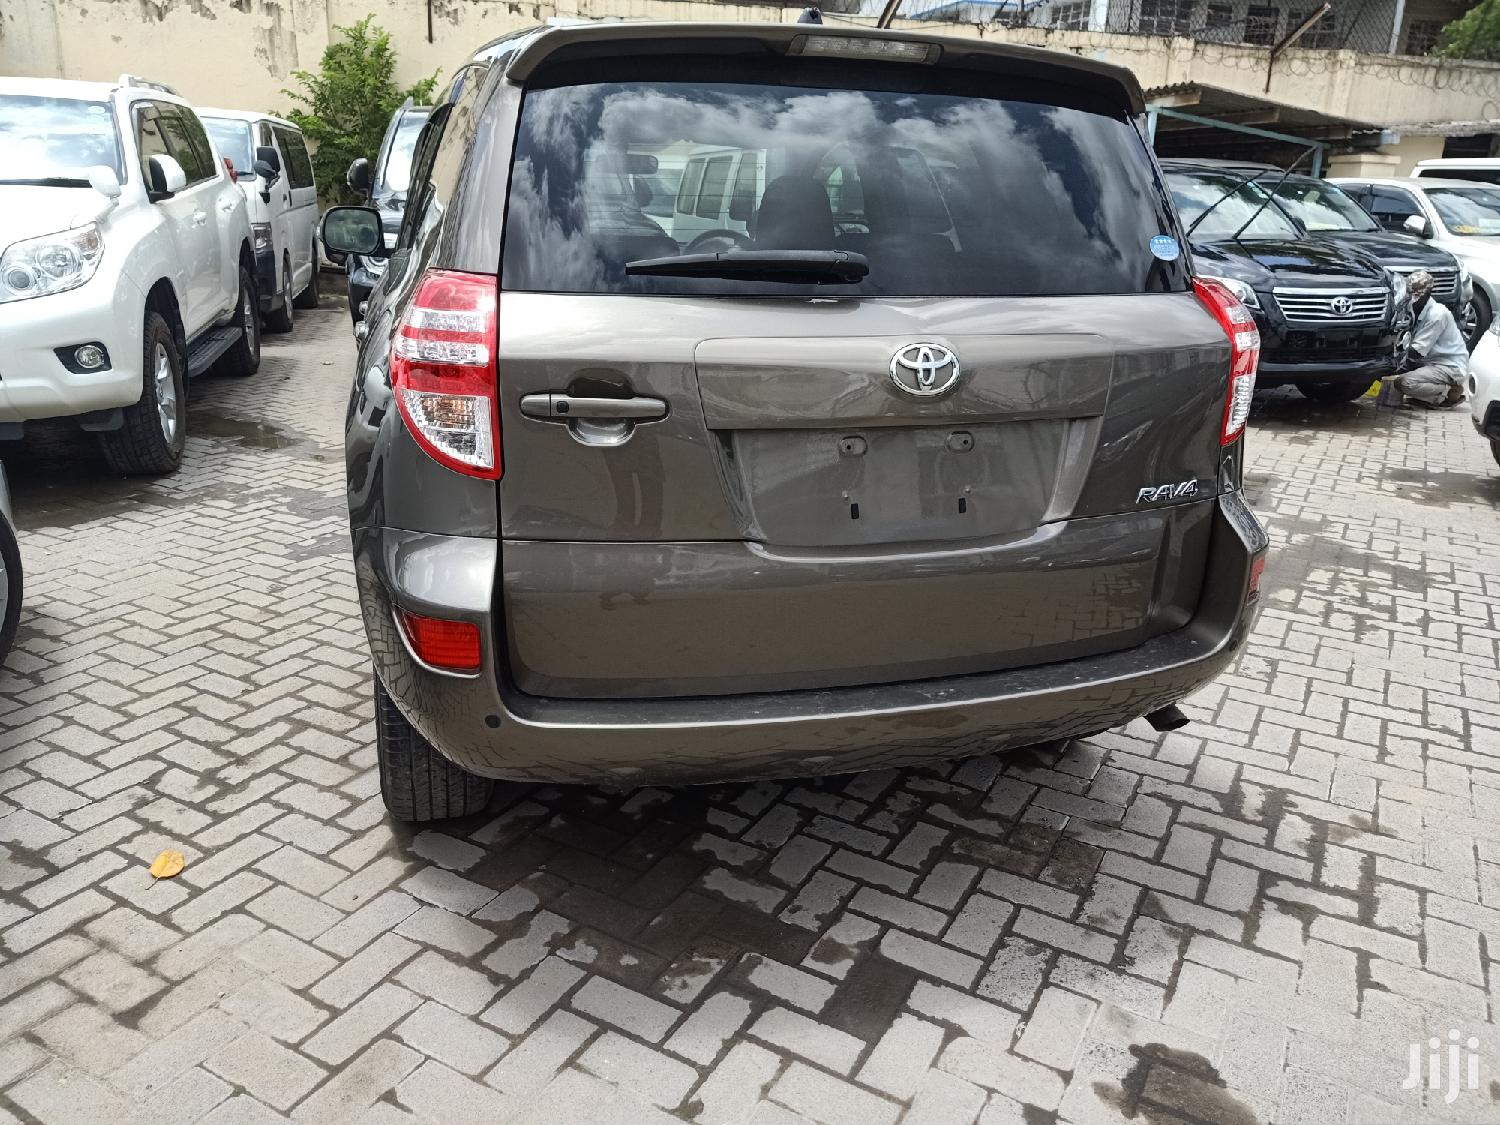 Toyota RAV4 2012 Brown | Cars for sale in Mvita, Mombasa, Kenya